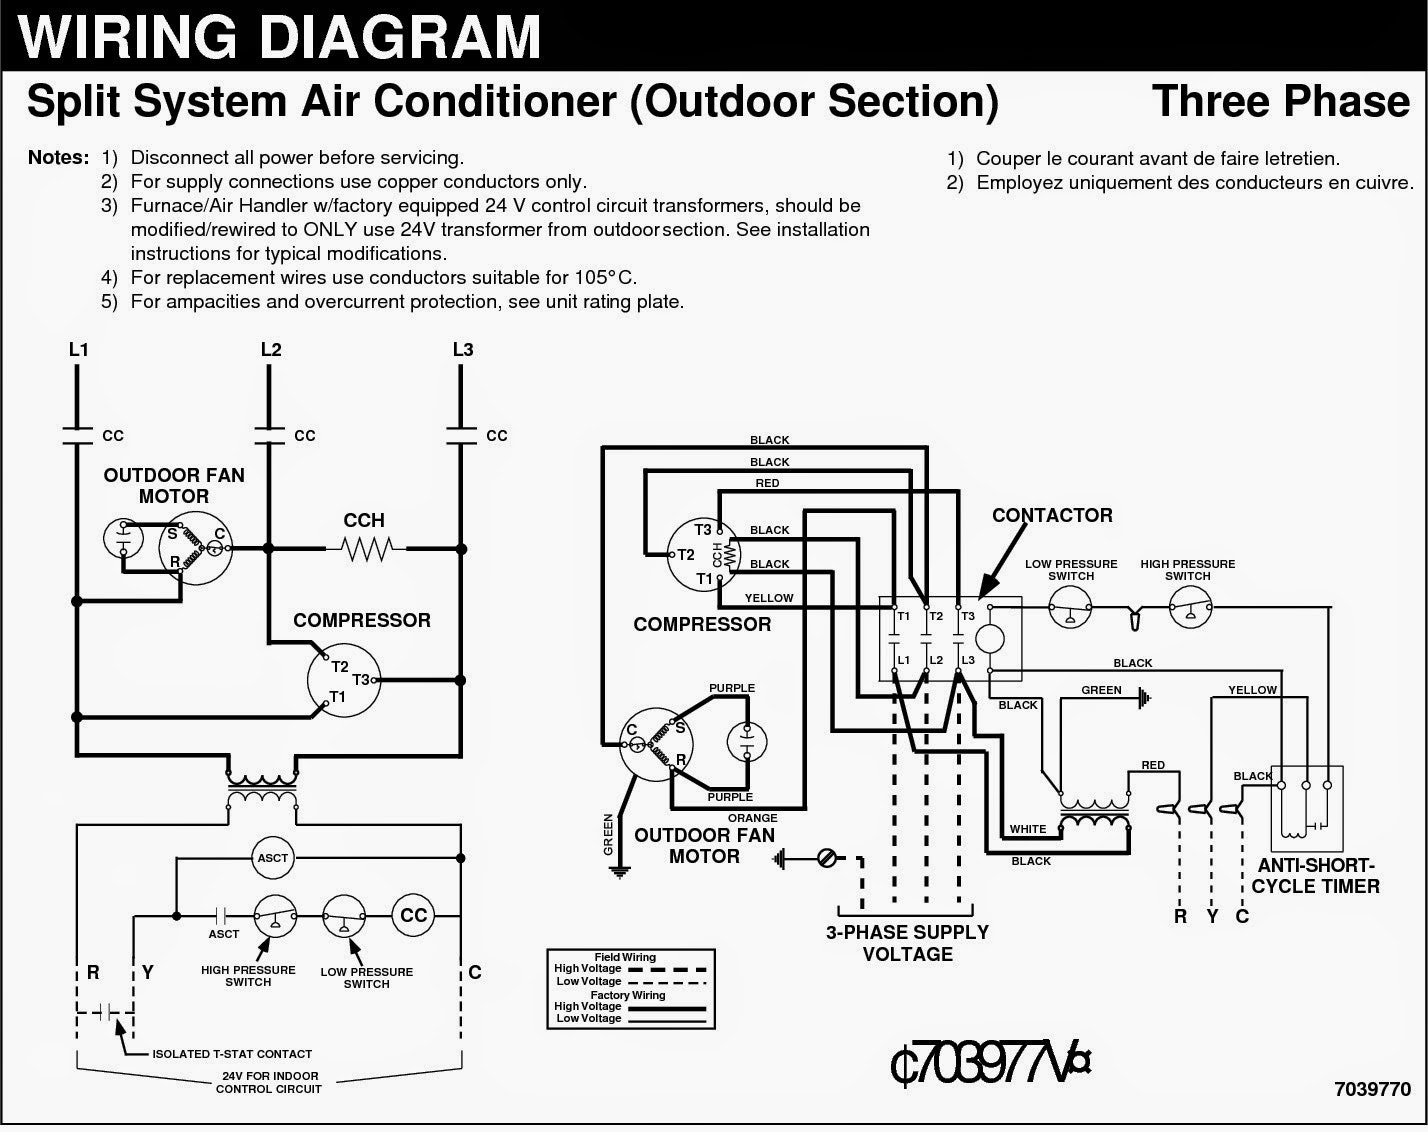 Hvac Wiring Schematics - Data Wiring Diagram Schematic - Hvac Wiring Diagram